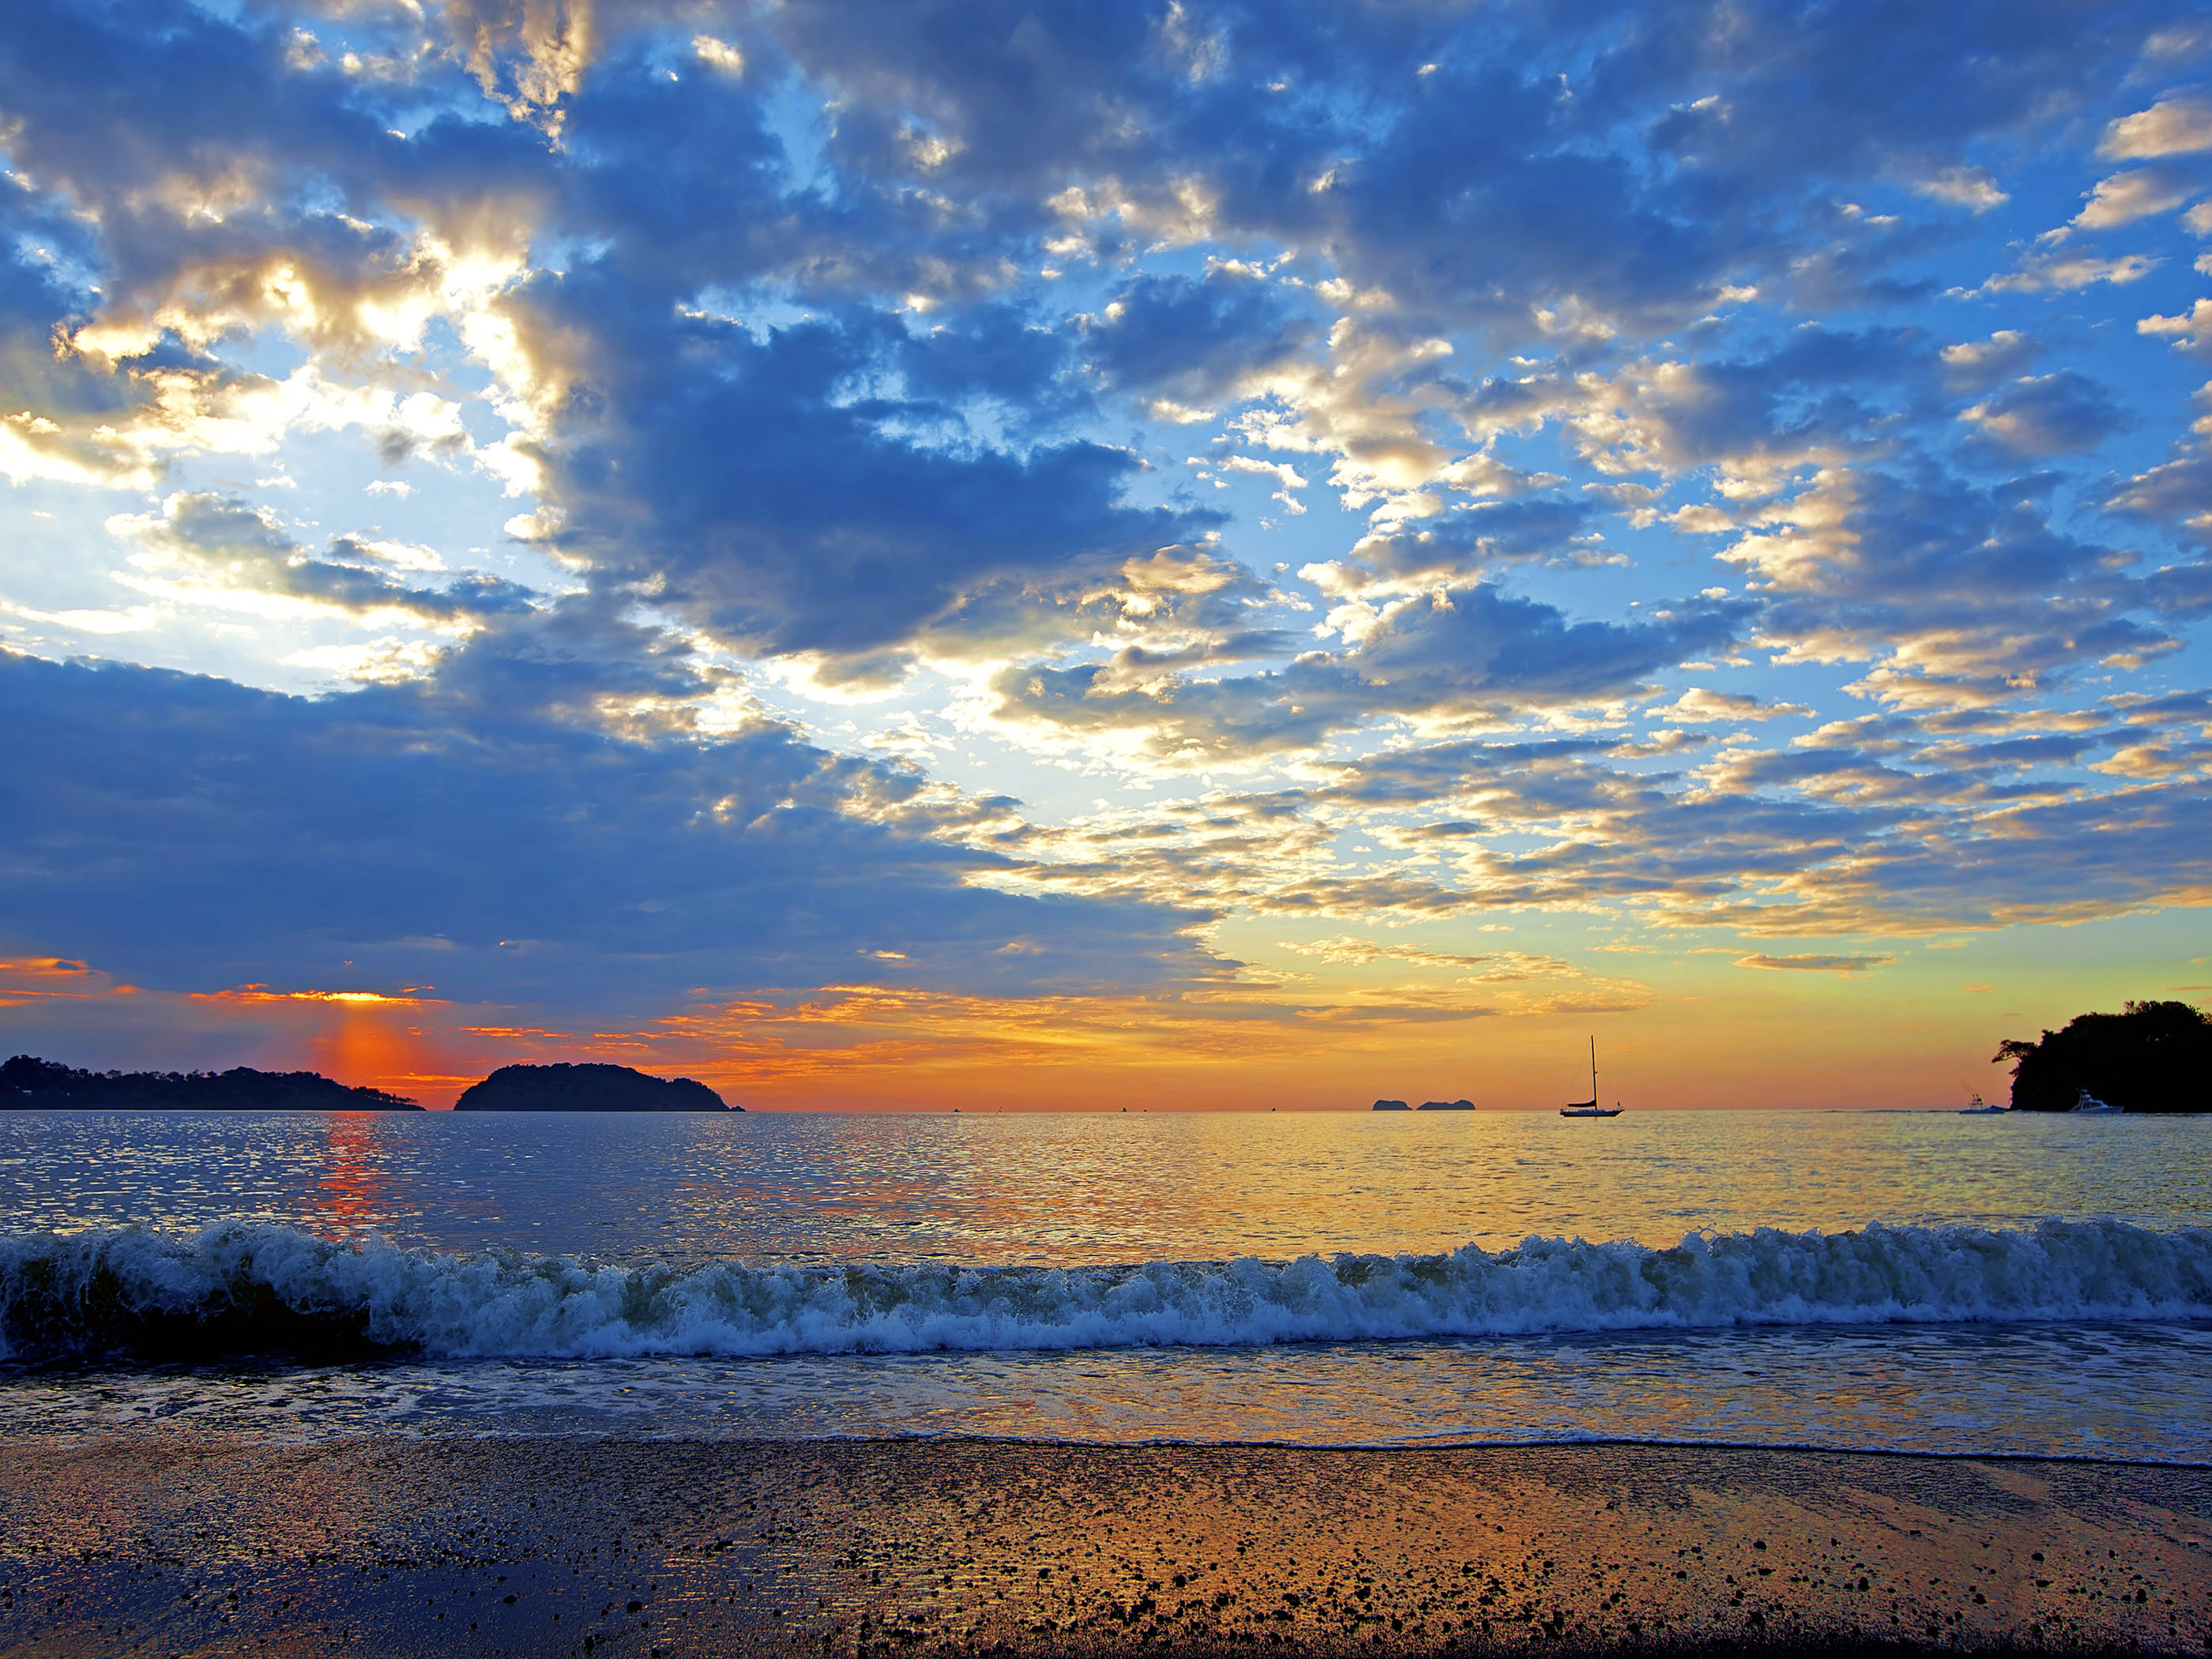 wallpaper of colorful sunset in the guancaste, costa rica - beach